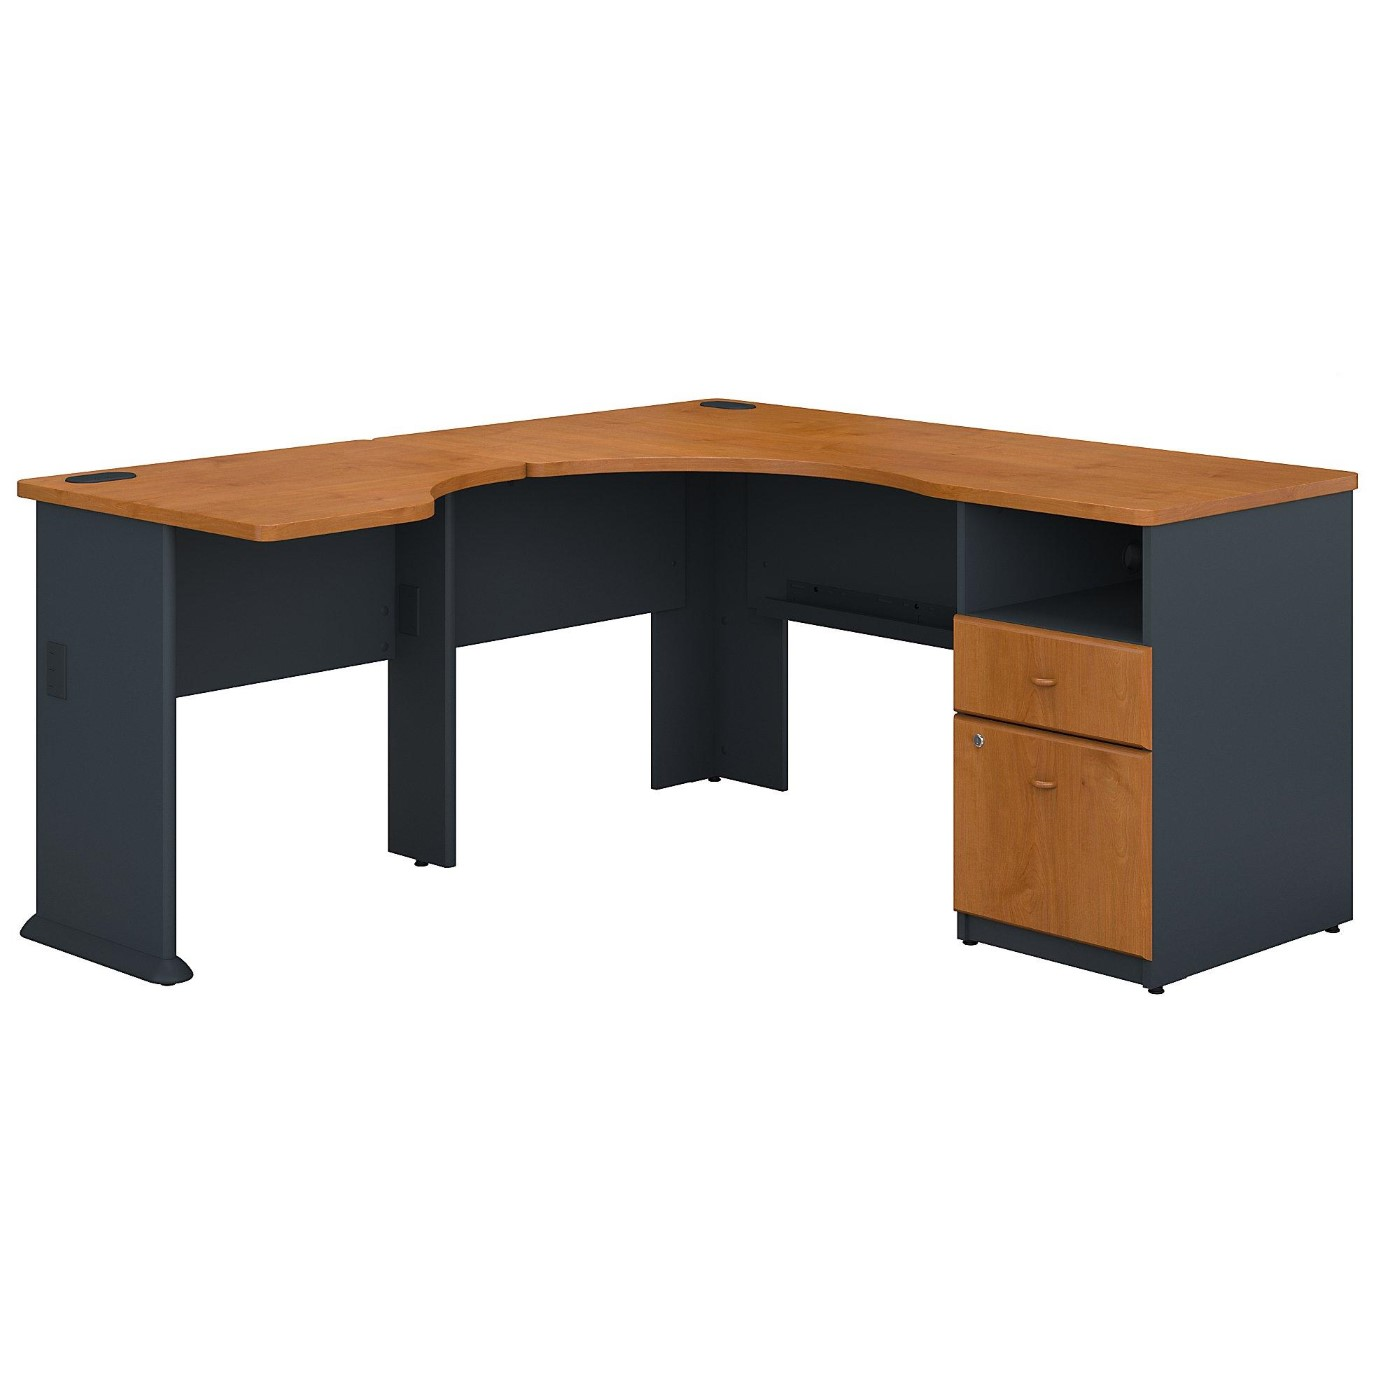 BUSH BUSINESS FURNITURE SERIES A 60W L SHAPED CORNER DESK WITH 2 DRAWER PEDESTAL AND 30W BRIDGE. FREE SHIPPING</font></b></font>&#x1F384<font color=red><b>ERGONOMICHOME HOLIDAY SALE - ENDS DEC. 17, 2019</b></font>&#x1F384